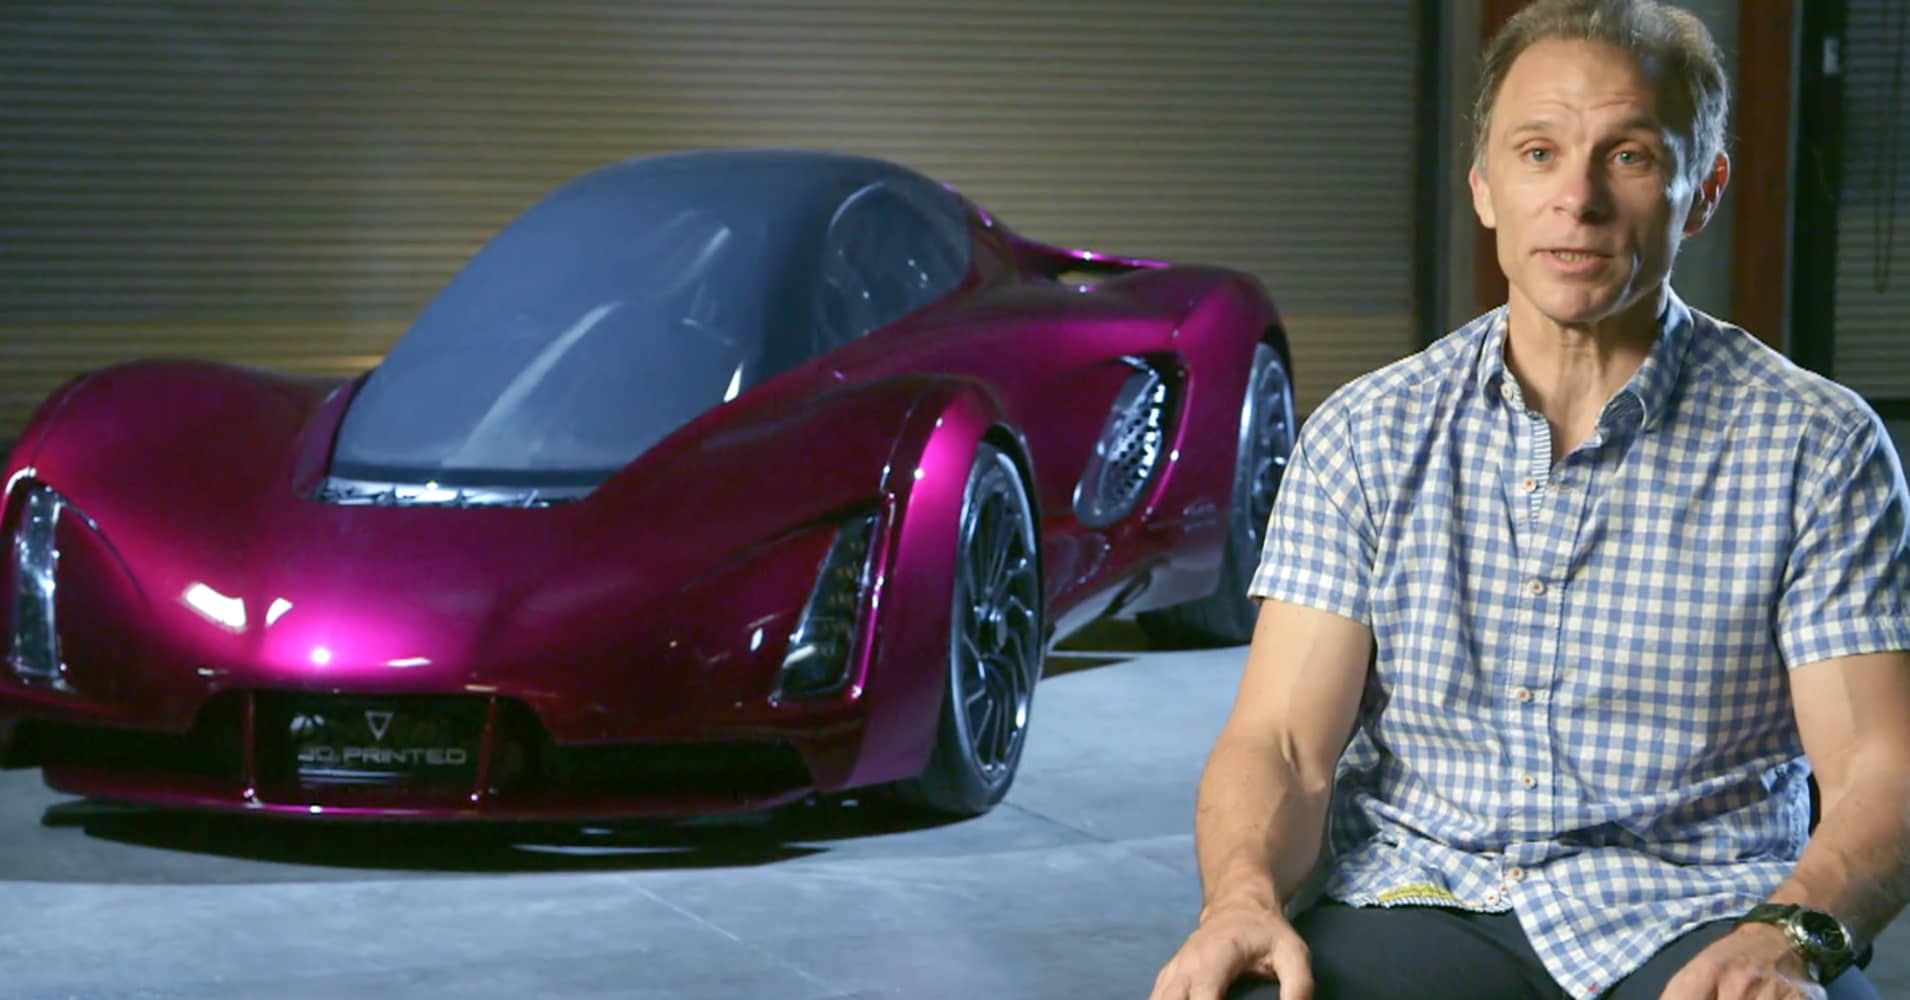 Kevin Czinger Is Making A 3d Printed Car Called The Blade